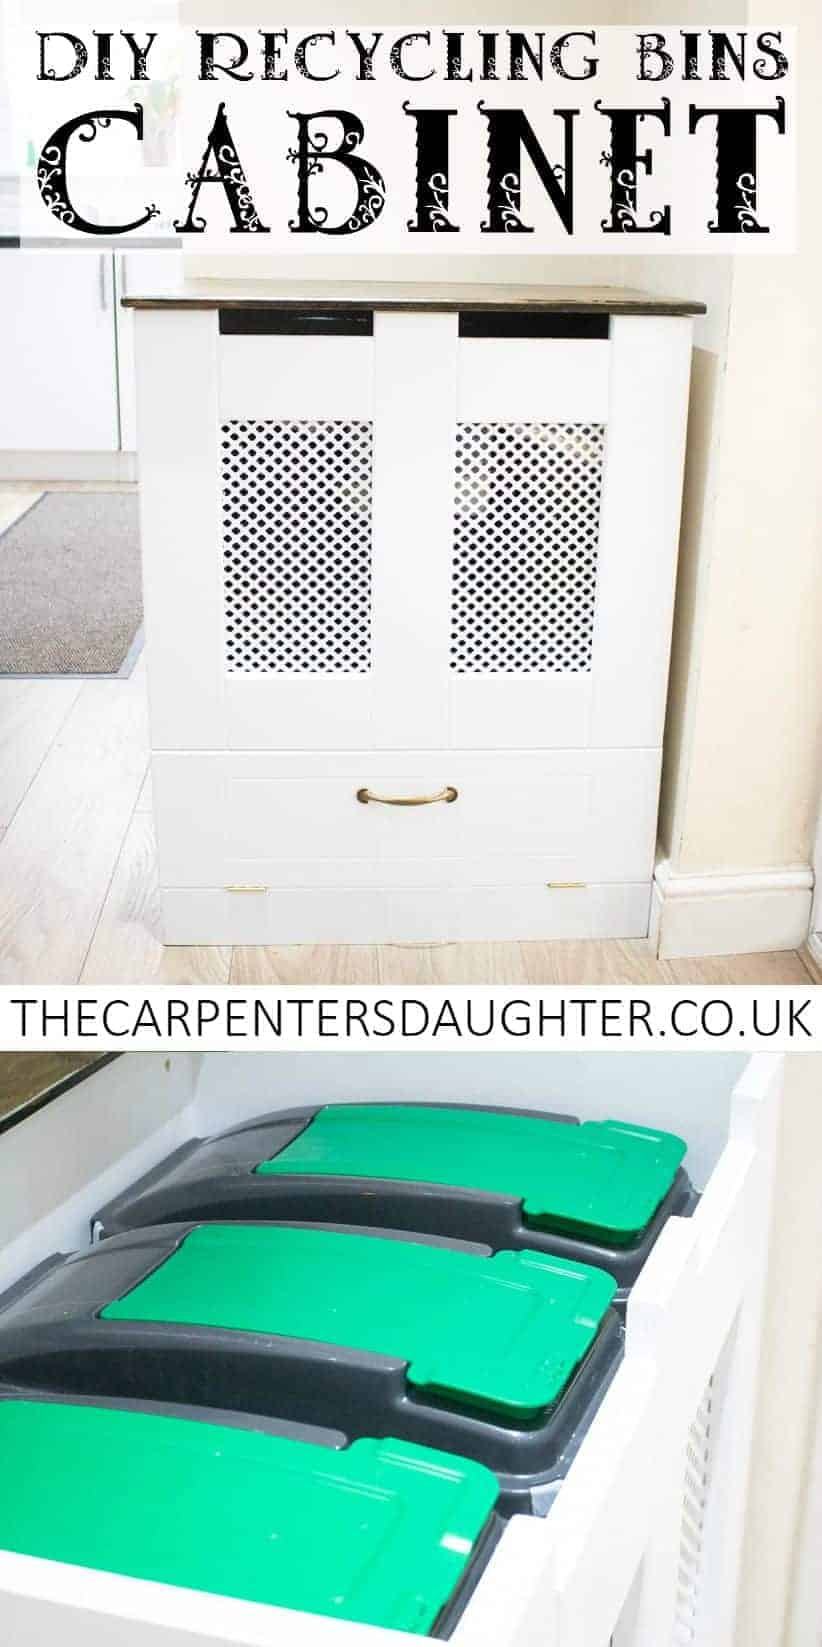 Pinterest pin of DIY recycling bins cabinet and close up of inside